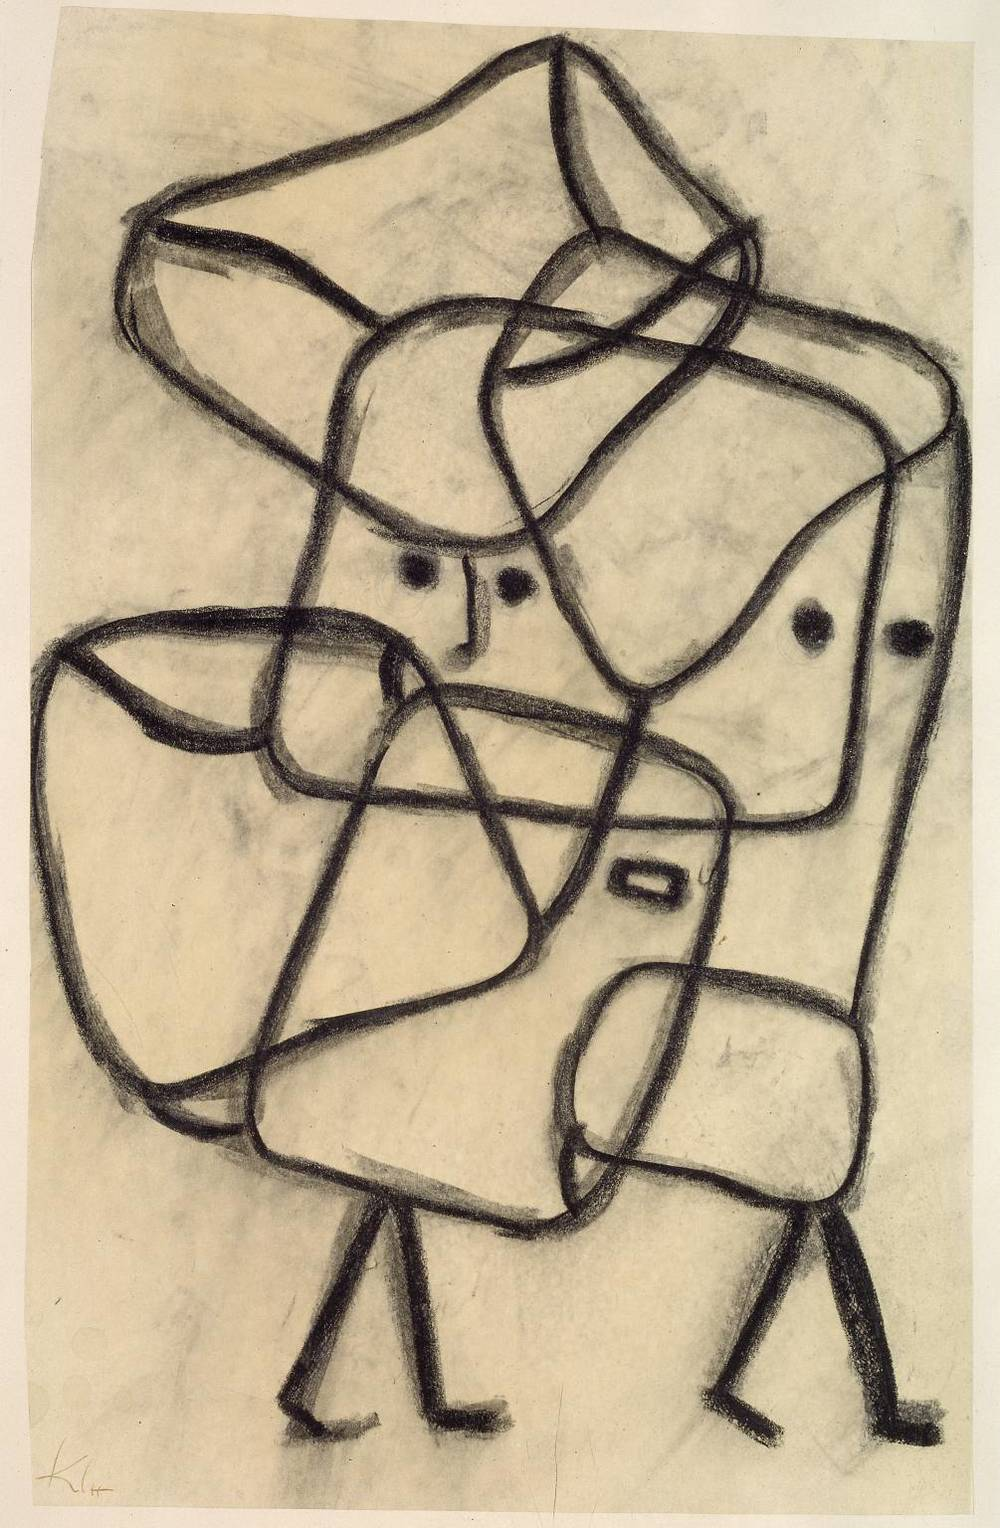 Burdened Children 1930 Paul Klee 1879-1940 Bequeathed by Elly Kahnweiler 1991 to form part of the gift of Gustav and Elly Kahnweiler, accessioned 1994 via Tate.org